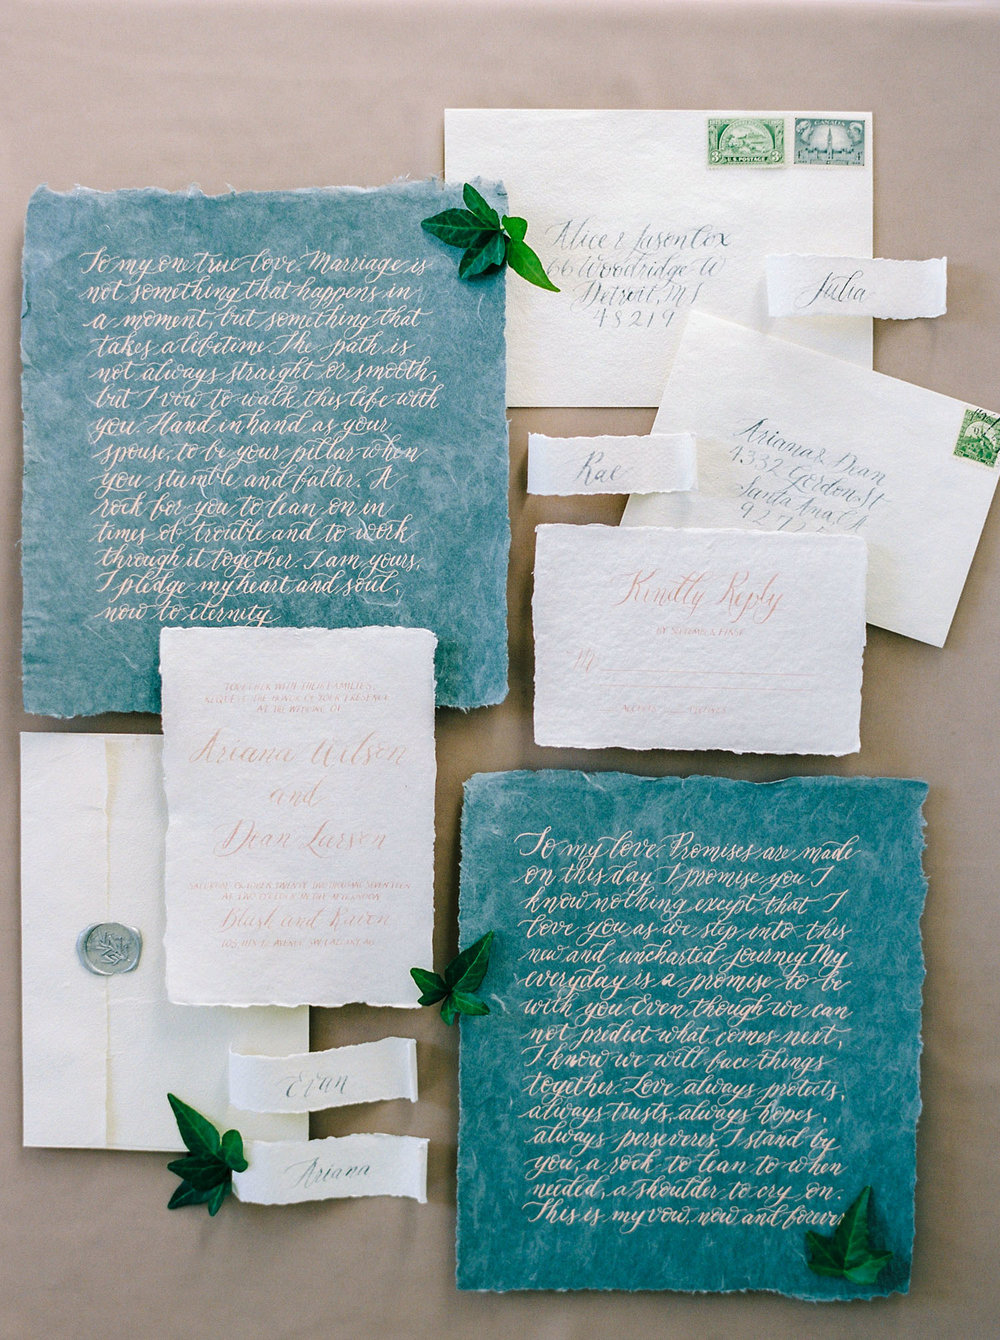 Calligraphy Calgary wedding stationery 1.jpg